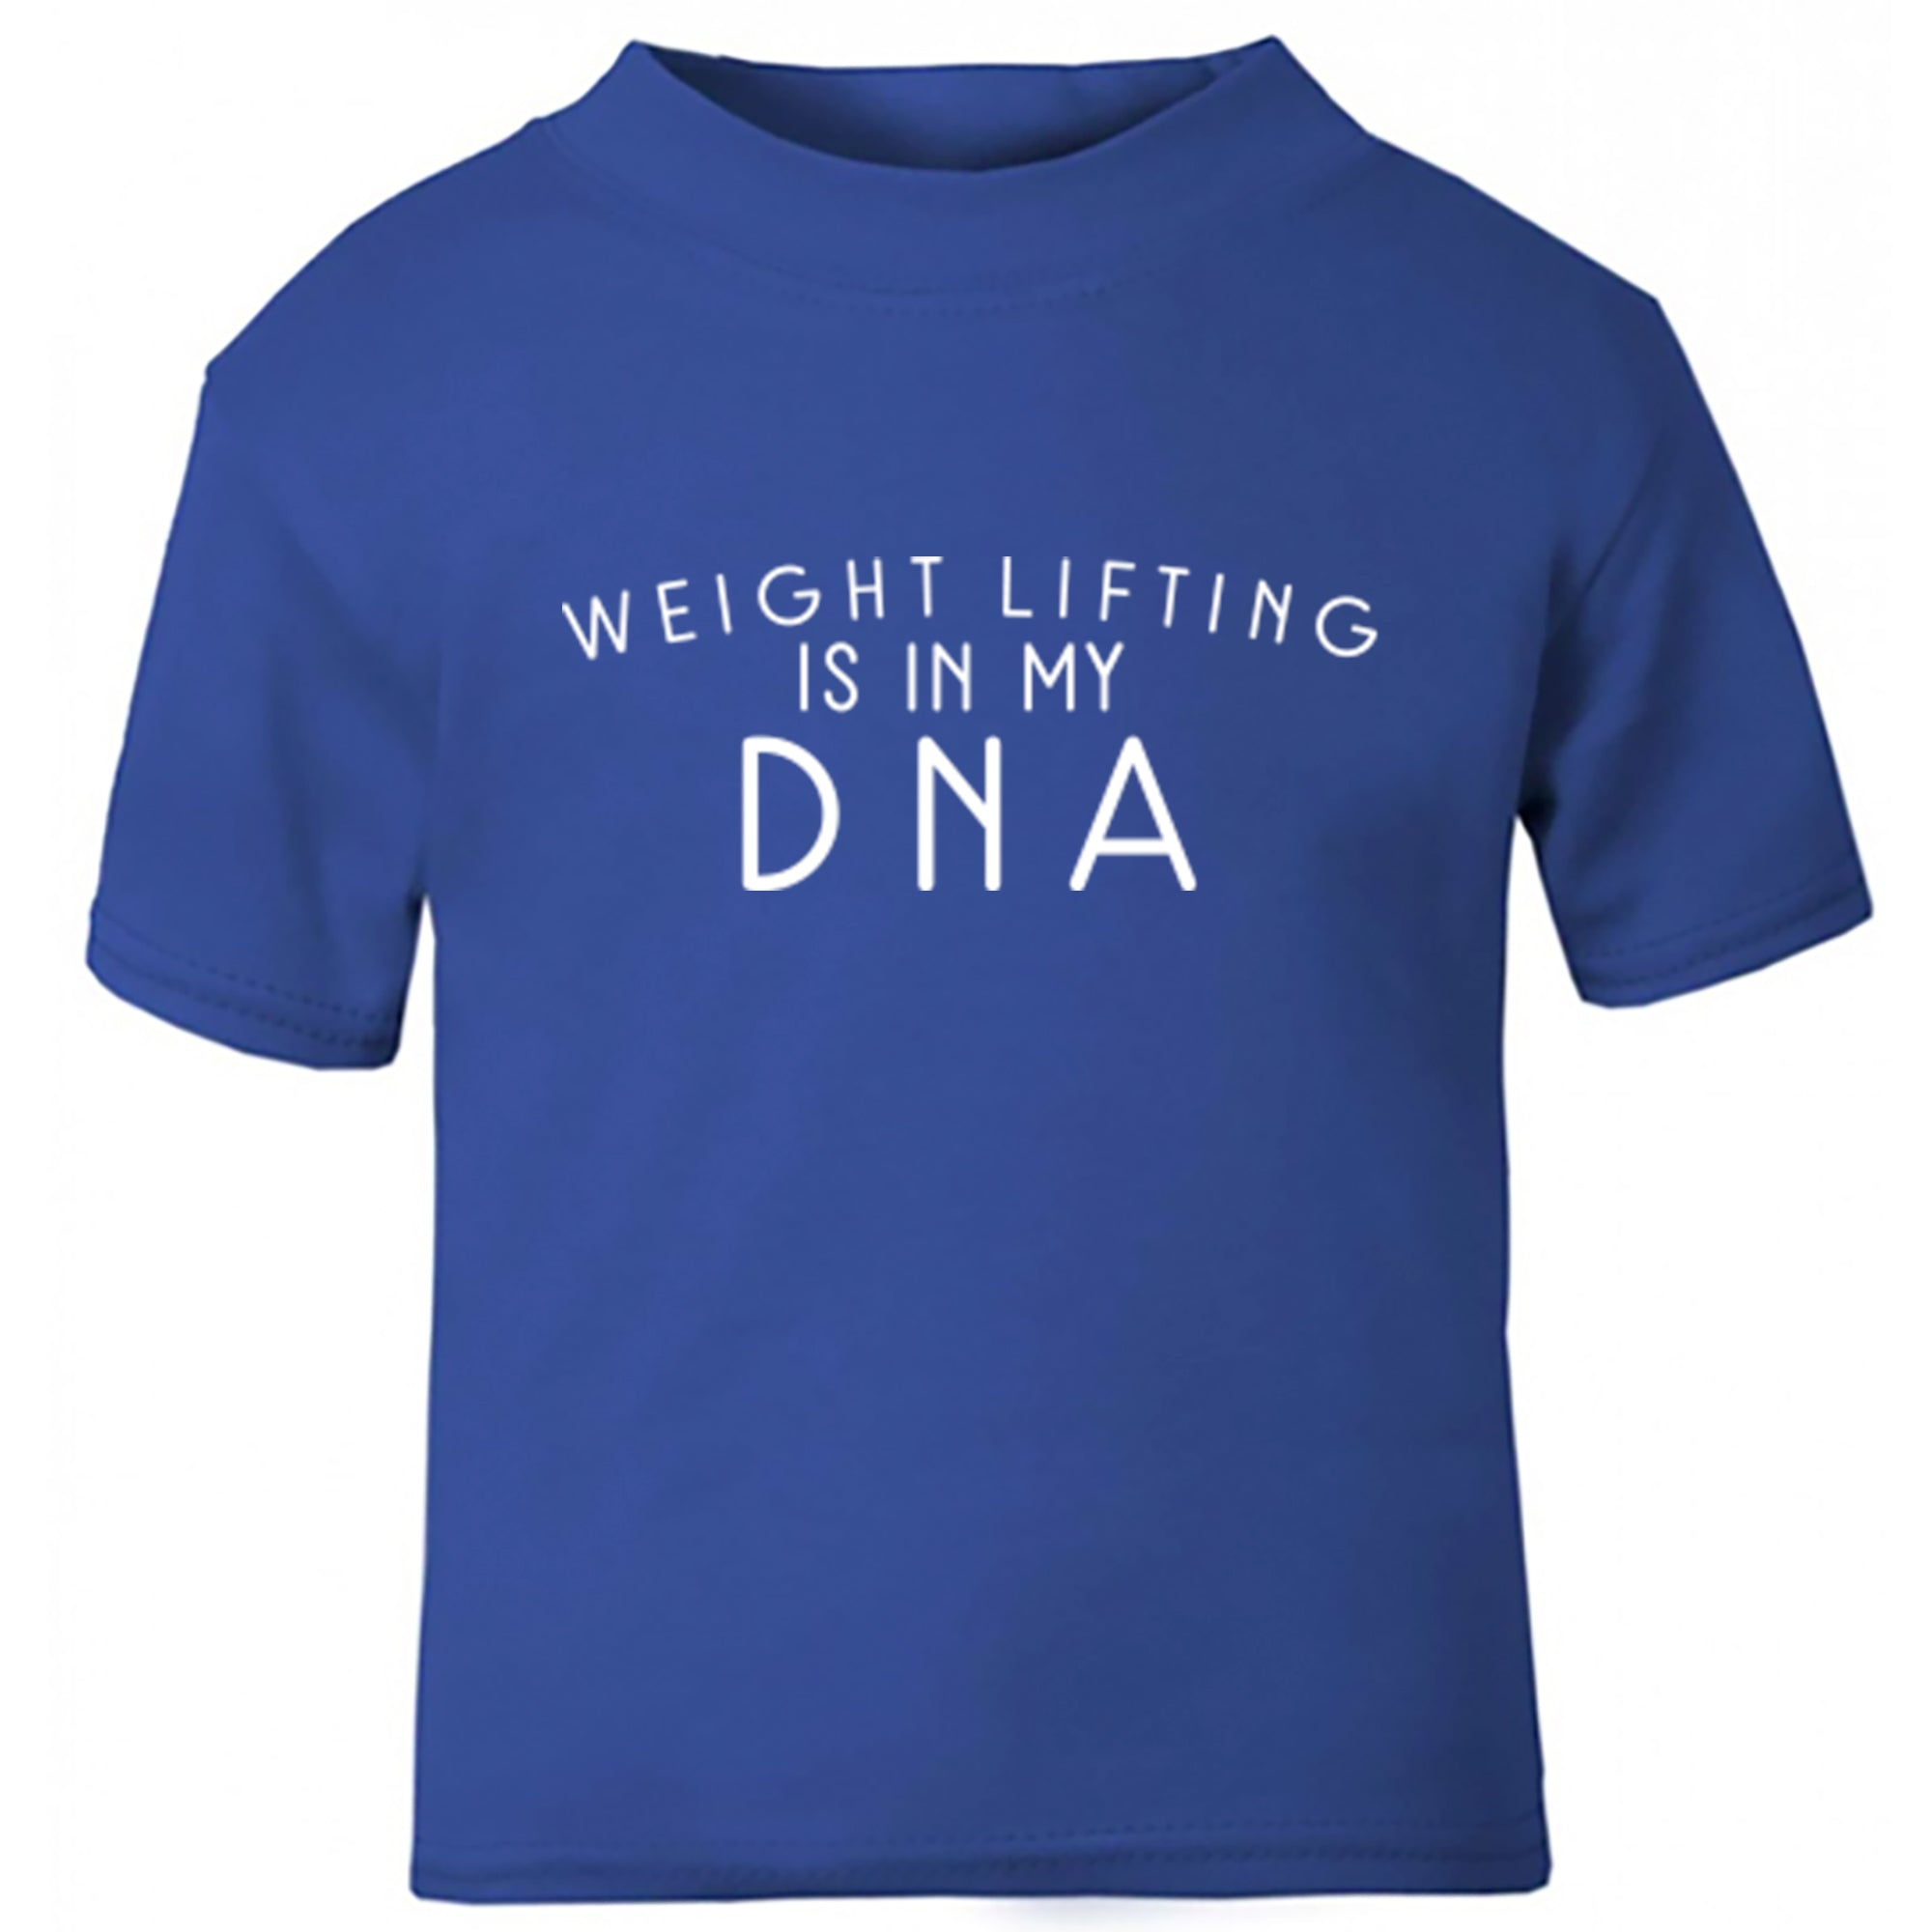 Weight Lifting Is In My DNA Childrens Ages 3/4-12/14 Unisex Fit T-Shirt S0696 - Illustrated Identity Ltd.